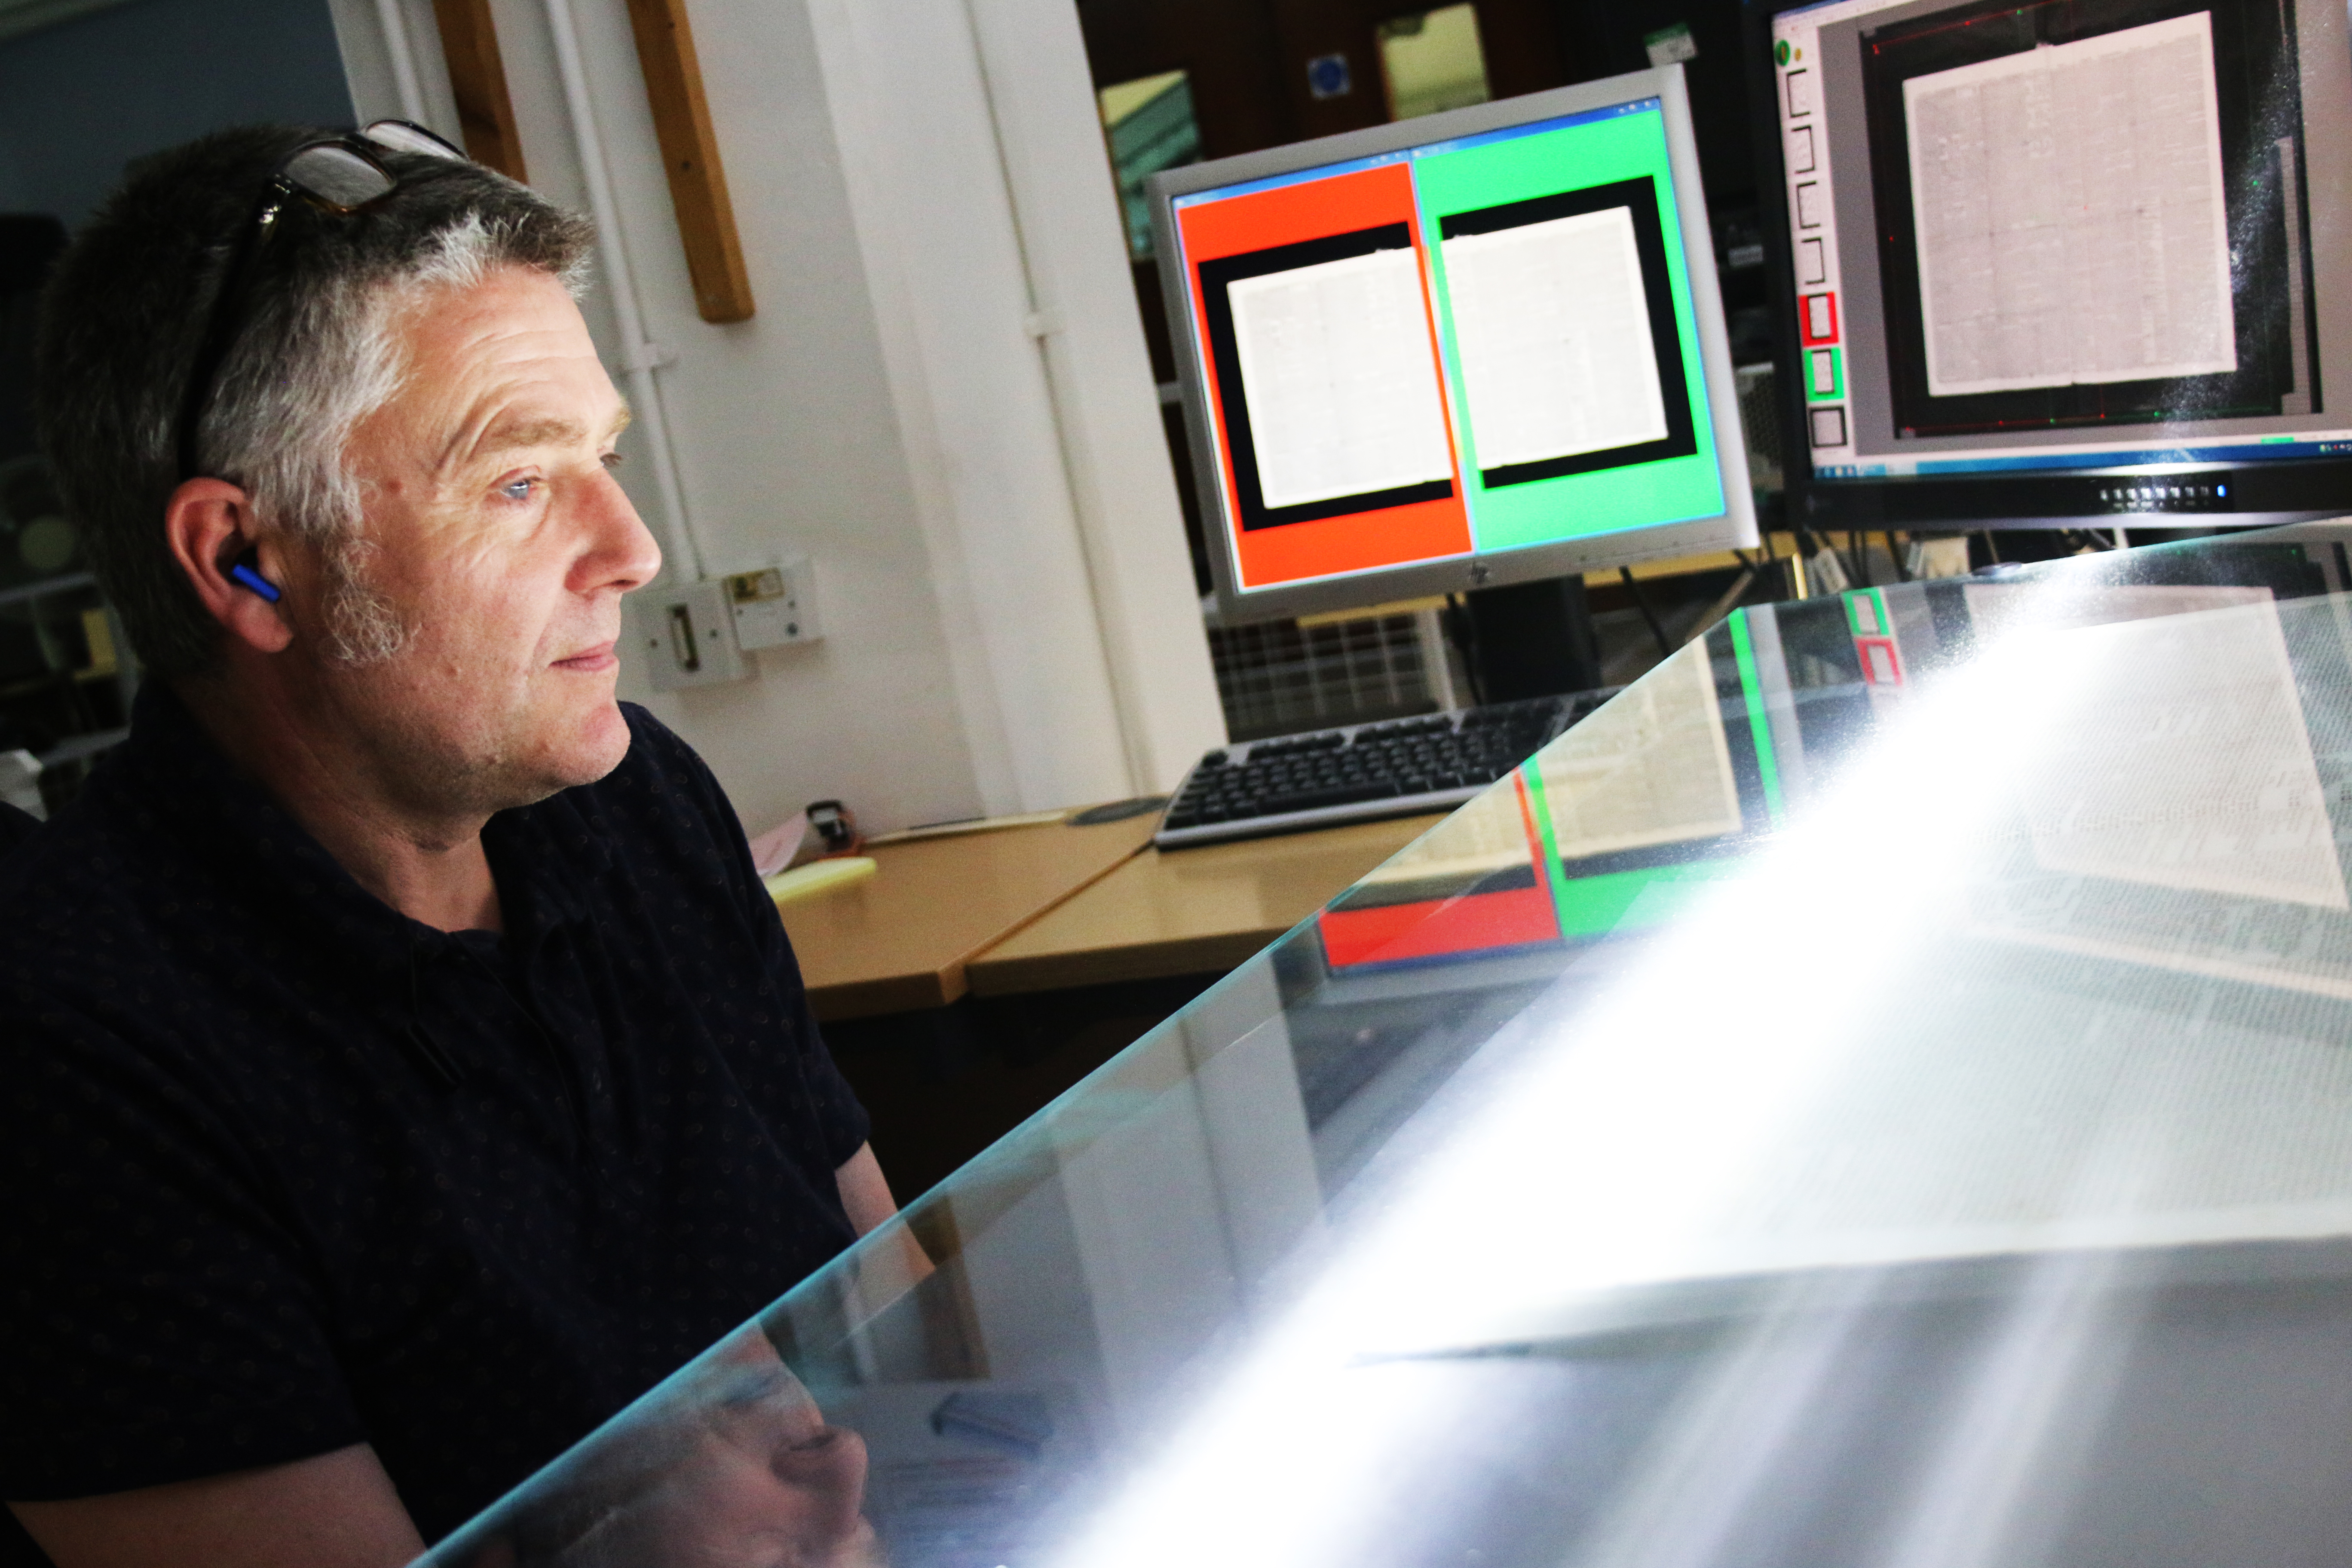 Imaging Services north team member working a large-scale scanner